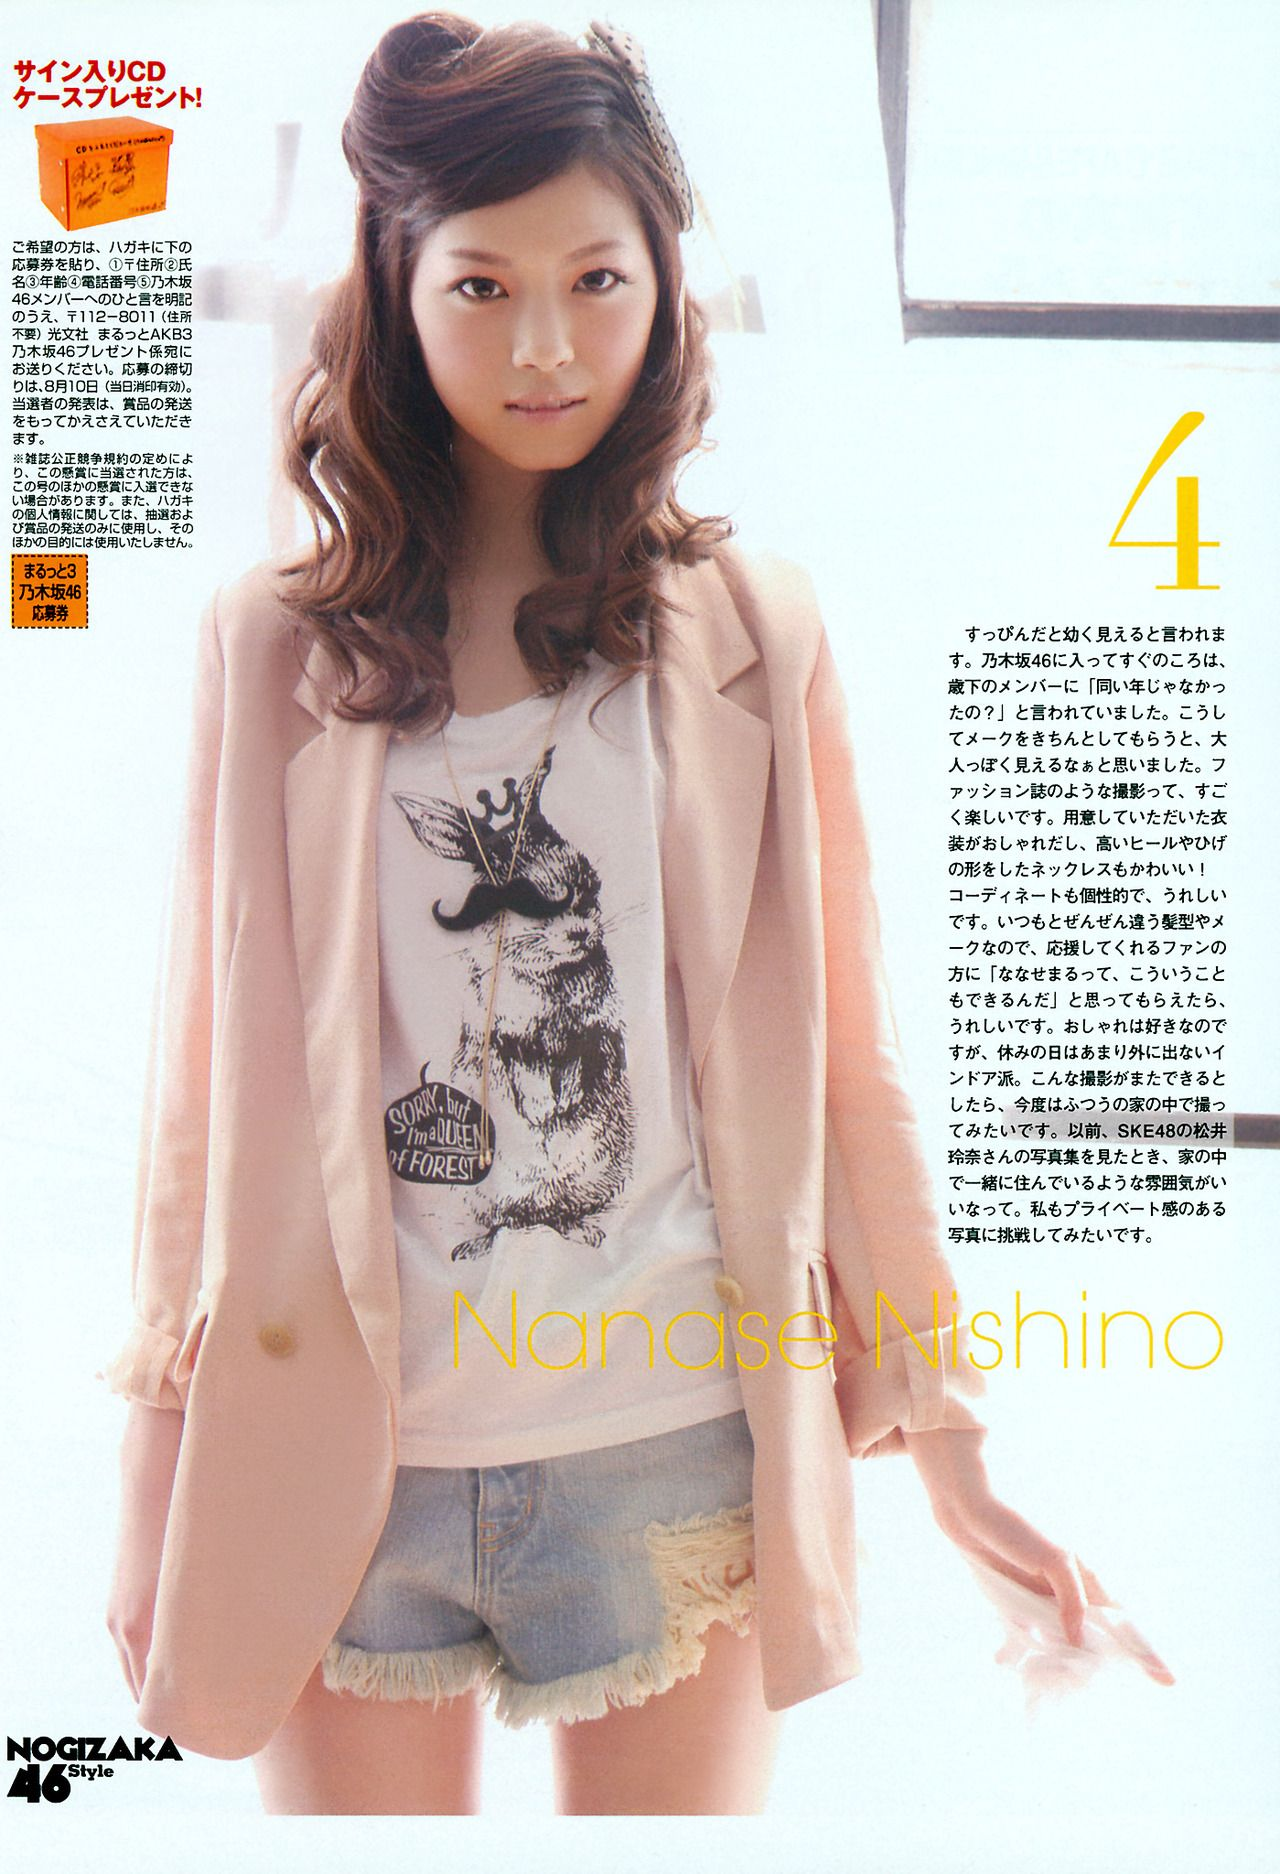 Fashion and beauty magazine 46 nogizaka46 style Ciaafrique fashion beauty style